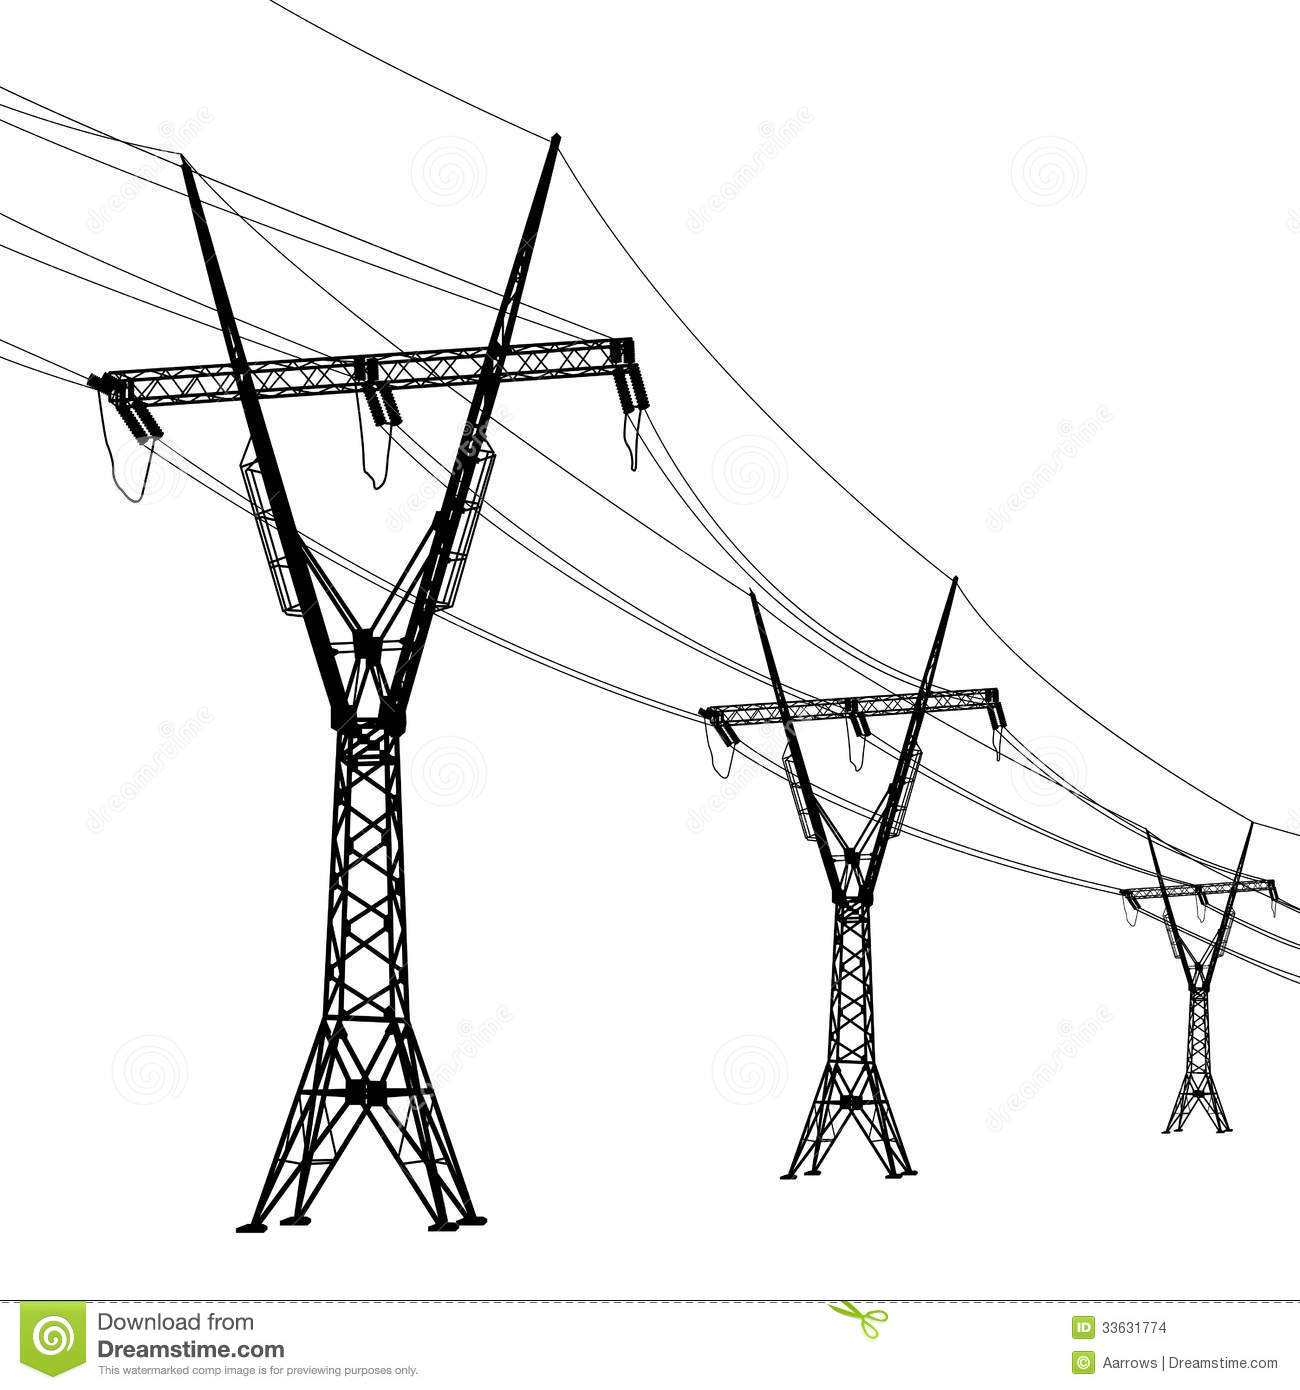 Salzer Boat Lift Switch Wiring Diagram besides Tesla Car Schematic Diagram further Nikola Tesla And His Discovery Of Wireless Technology further Electricity Transmission Tower Silhouette Gm482749451 14547991 besides Polaris Patent Reveals A Side By Side Three Wheeler. on electric power transmission